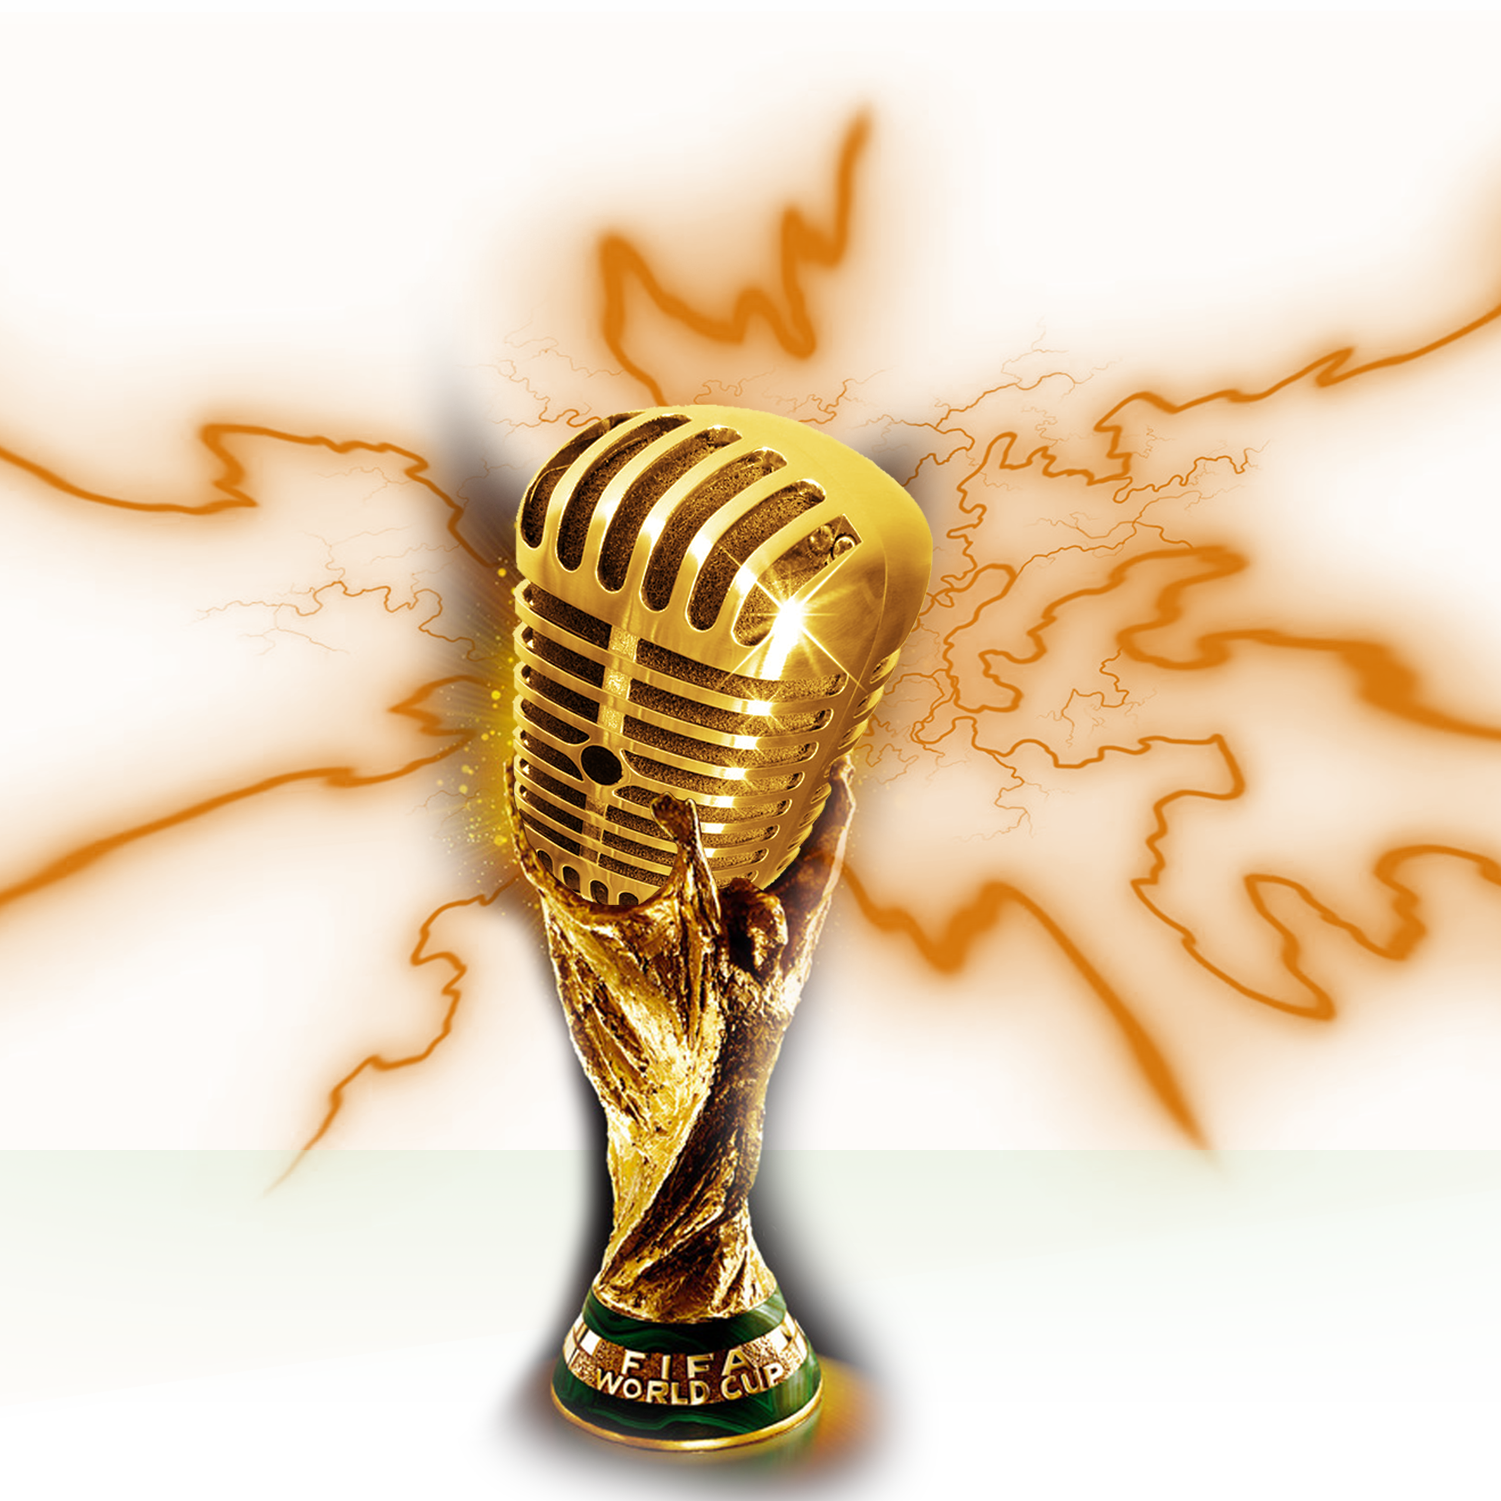 Gold mic png. Microphone headphones download transprent